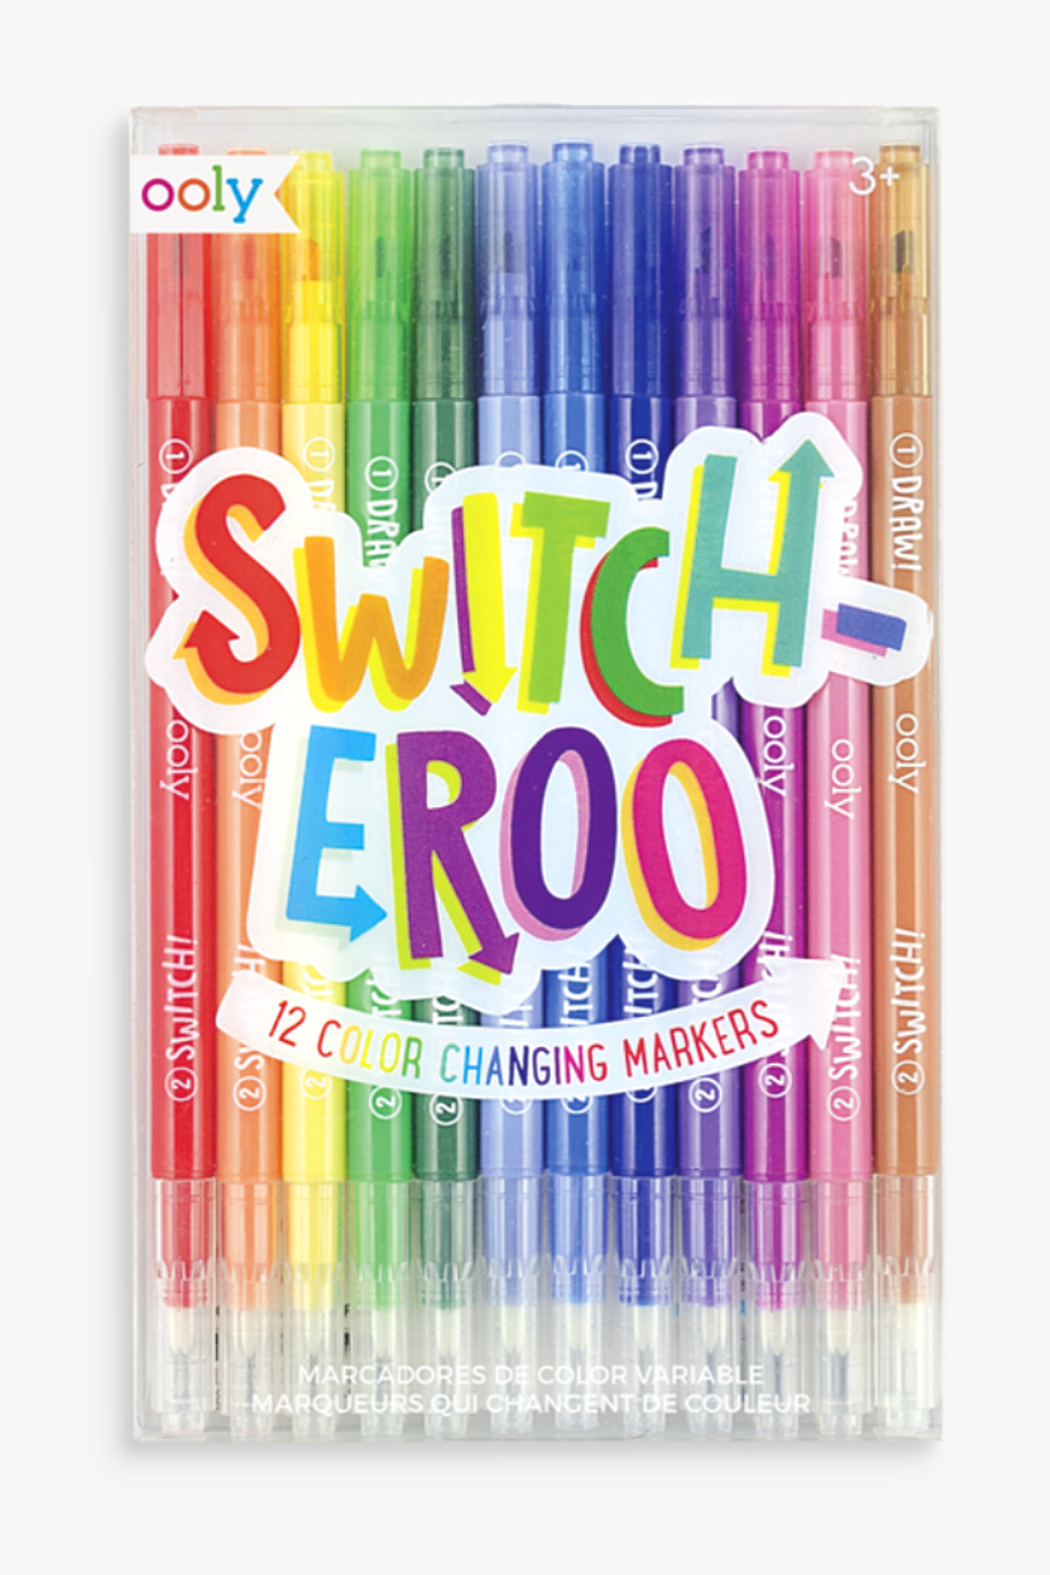 Ooly Switcheroo Color Changing Markers - Main Image